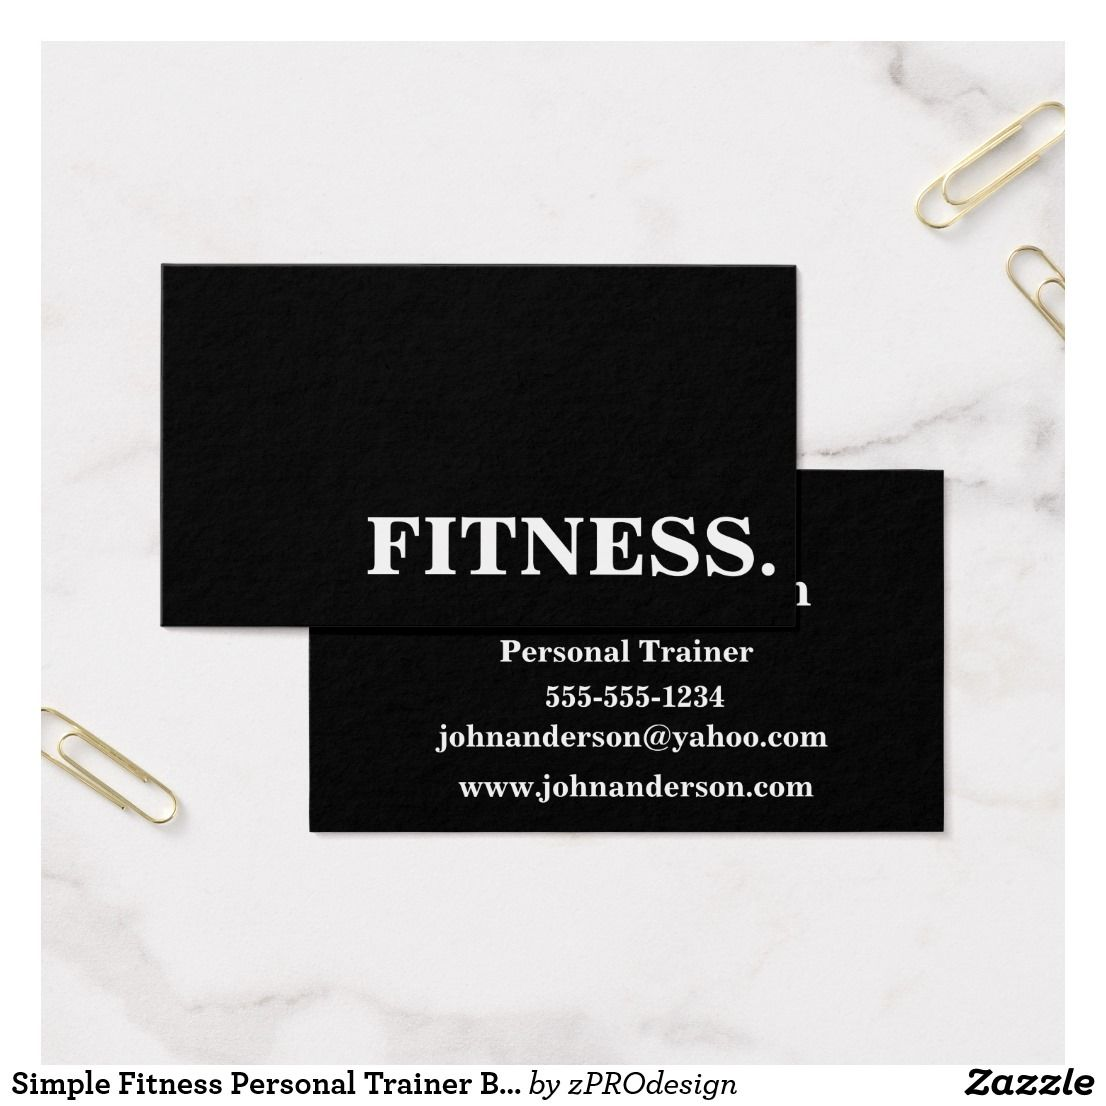 Simple Fitness Personal Trainer Business Card Zazzle Com Personal Trainer Business Card Easy Workouts Online Fitness Trainer